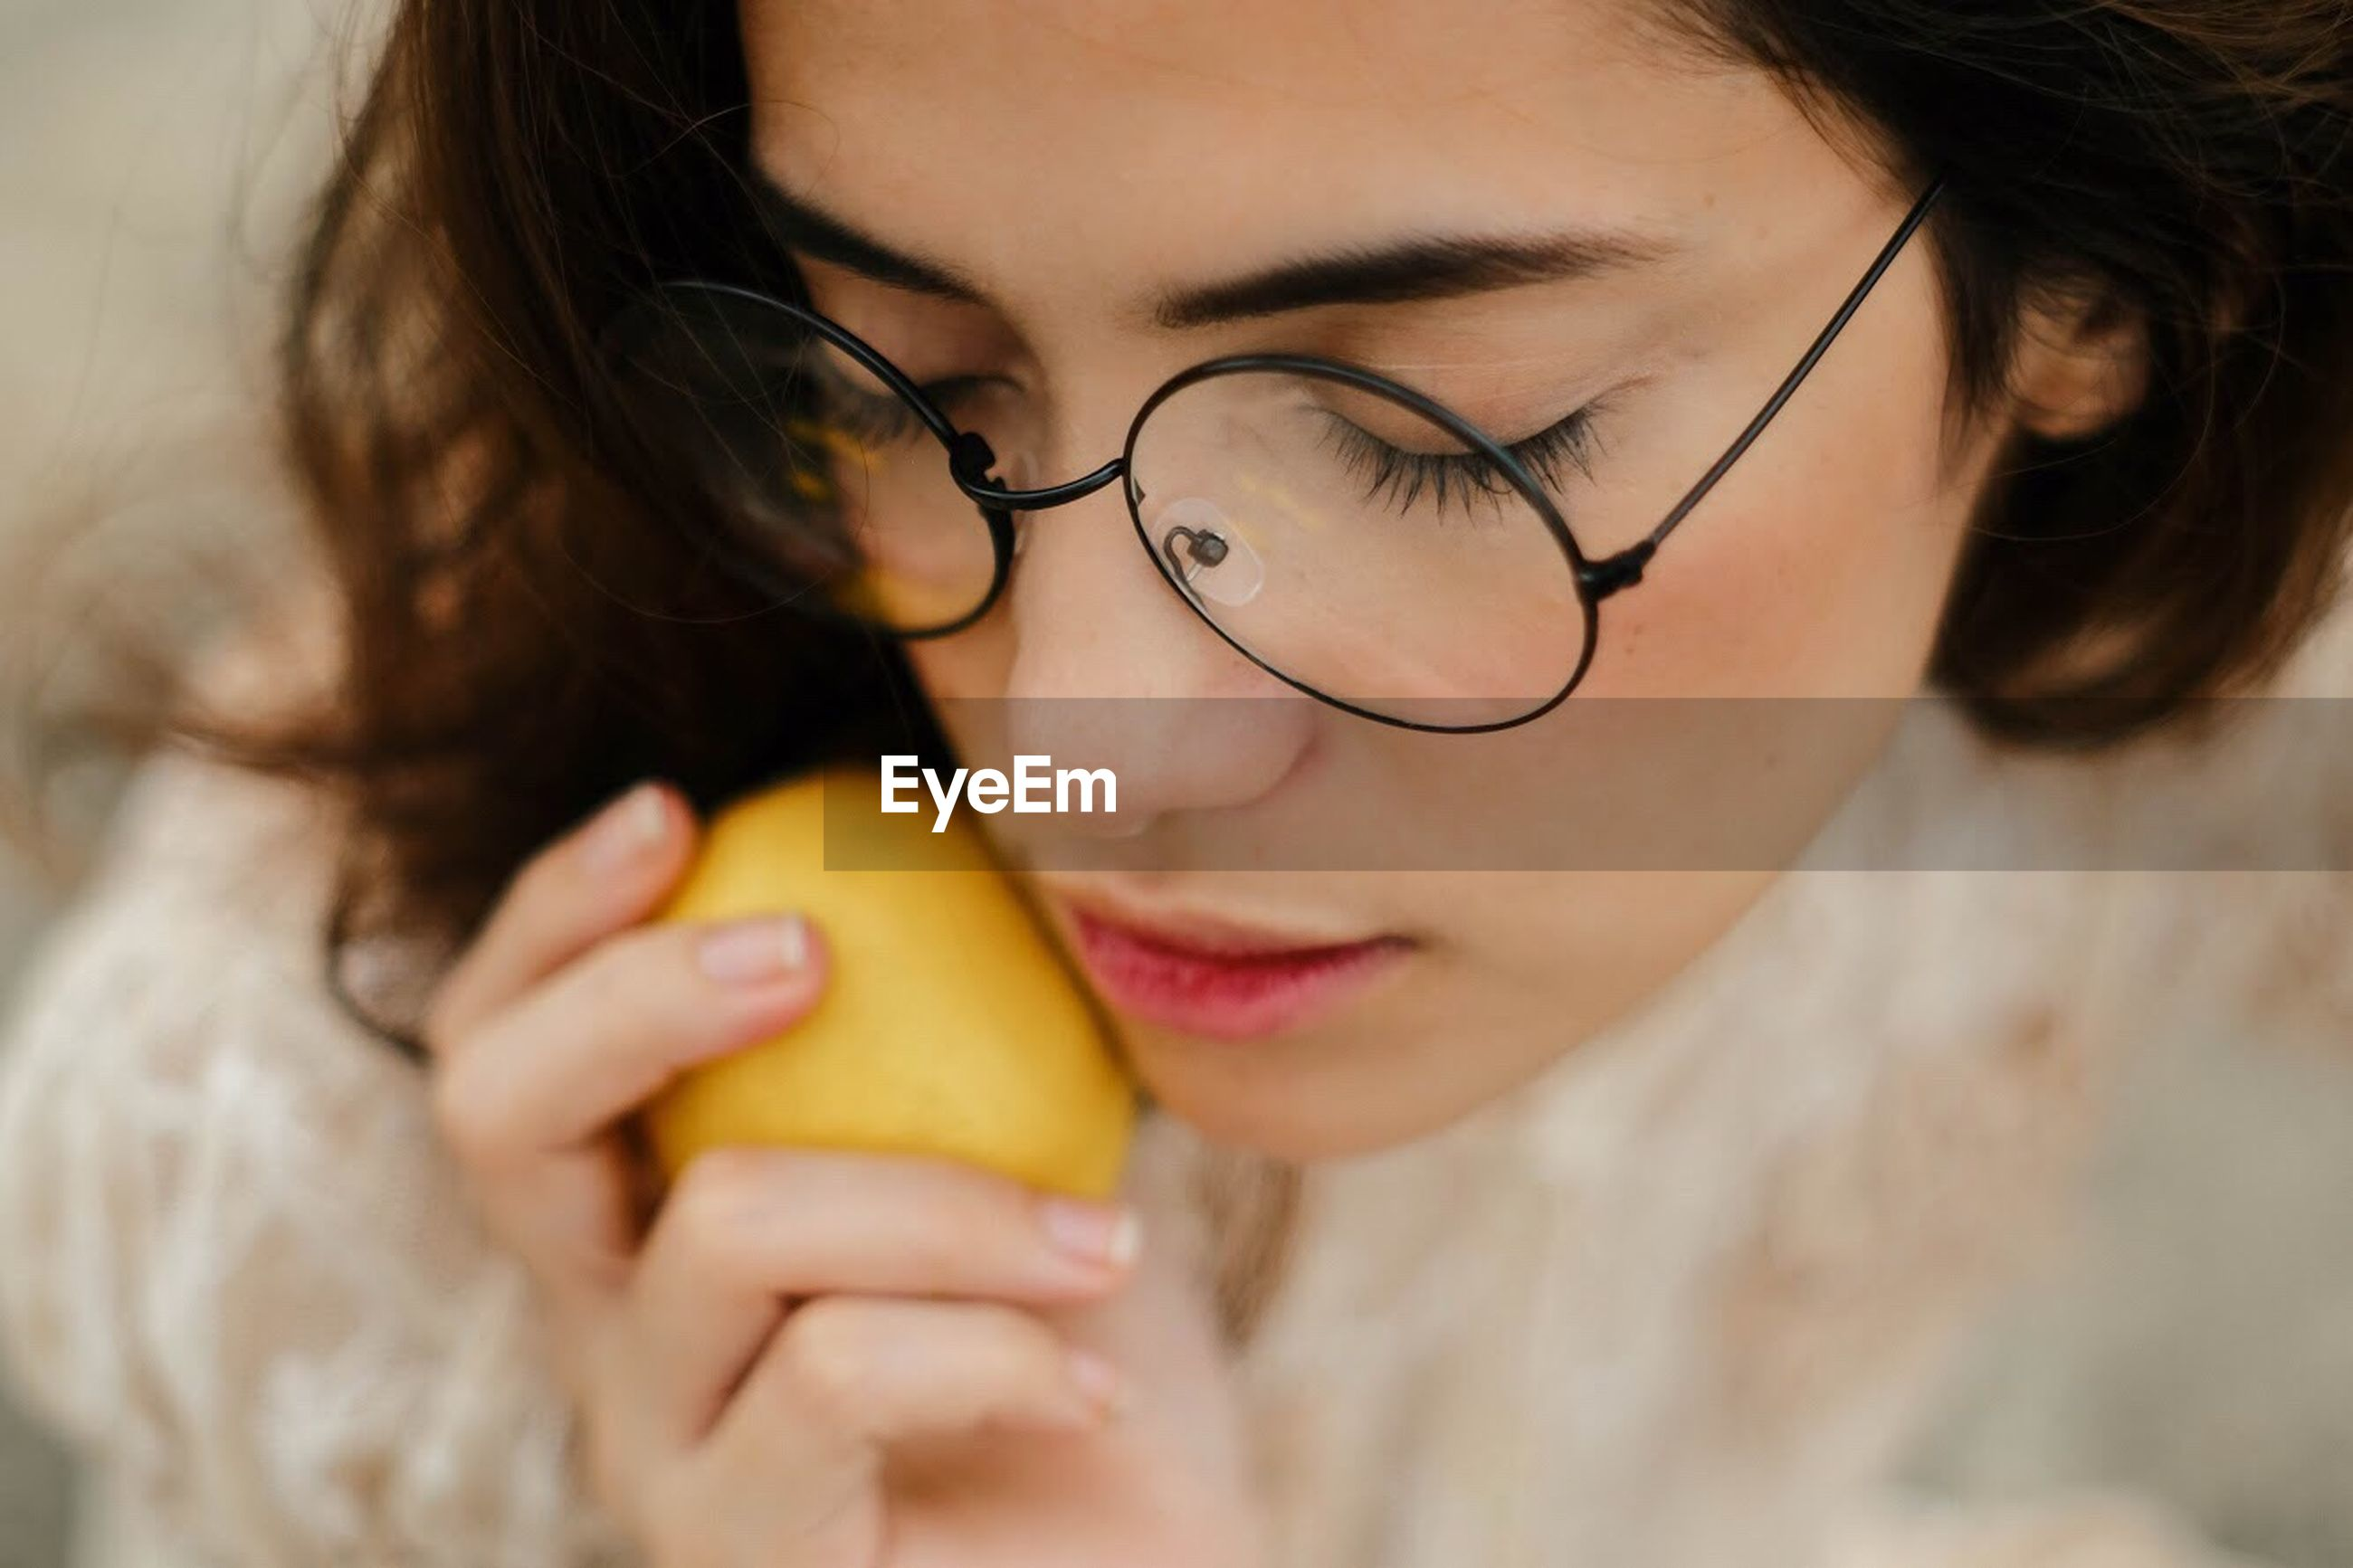 fruit, eyeglasses, one person, food and drink, real people, healthy eating, food, holding, looking down, young adult, close-up, indoors, lifestyles, headshot, childhood, freshness, young women, day, eating, human hand, people, adult